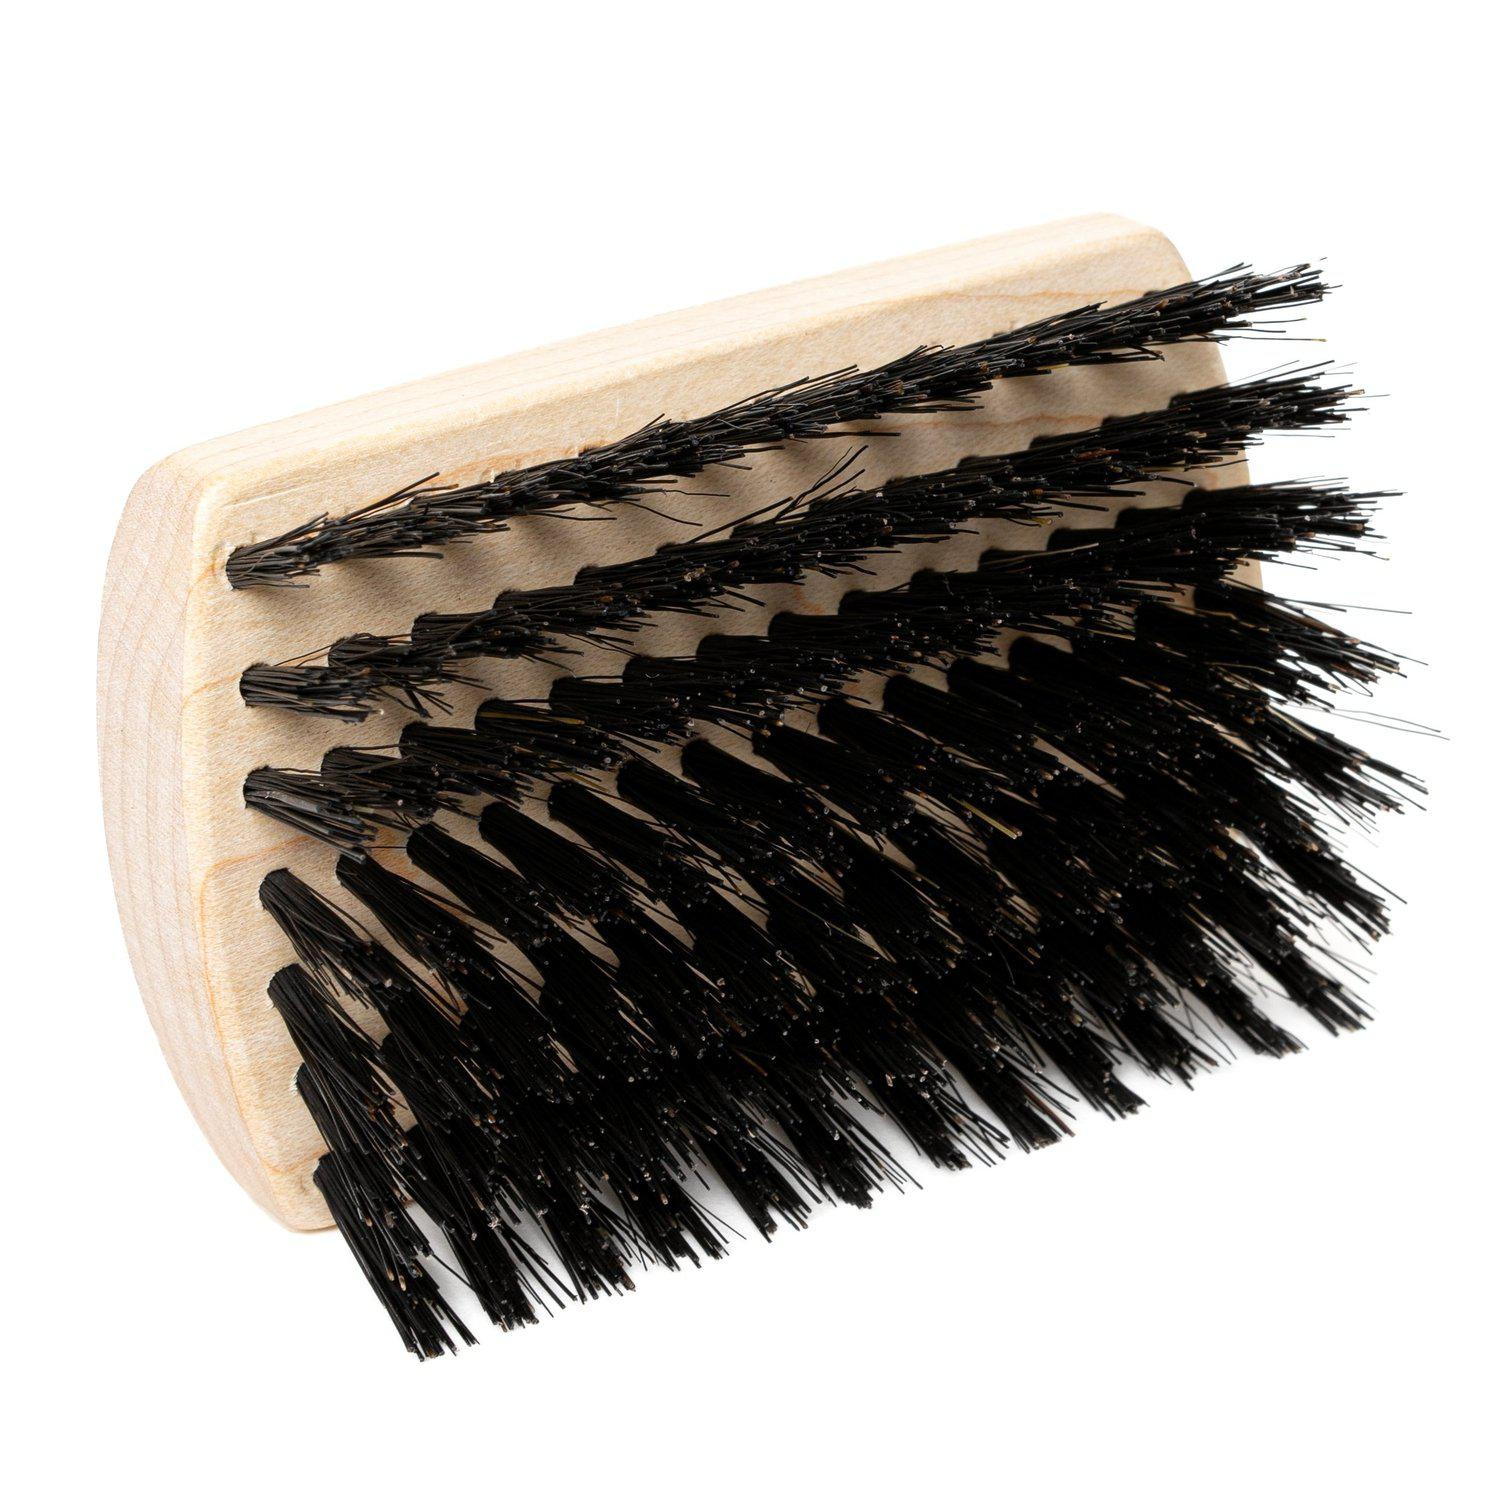 Hair & Beard Brush w/ Maple block and Natural Boars Hair Bristles - Pocket Size-Hair Brushes-Fuller Brush Company